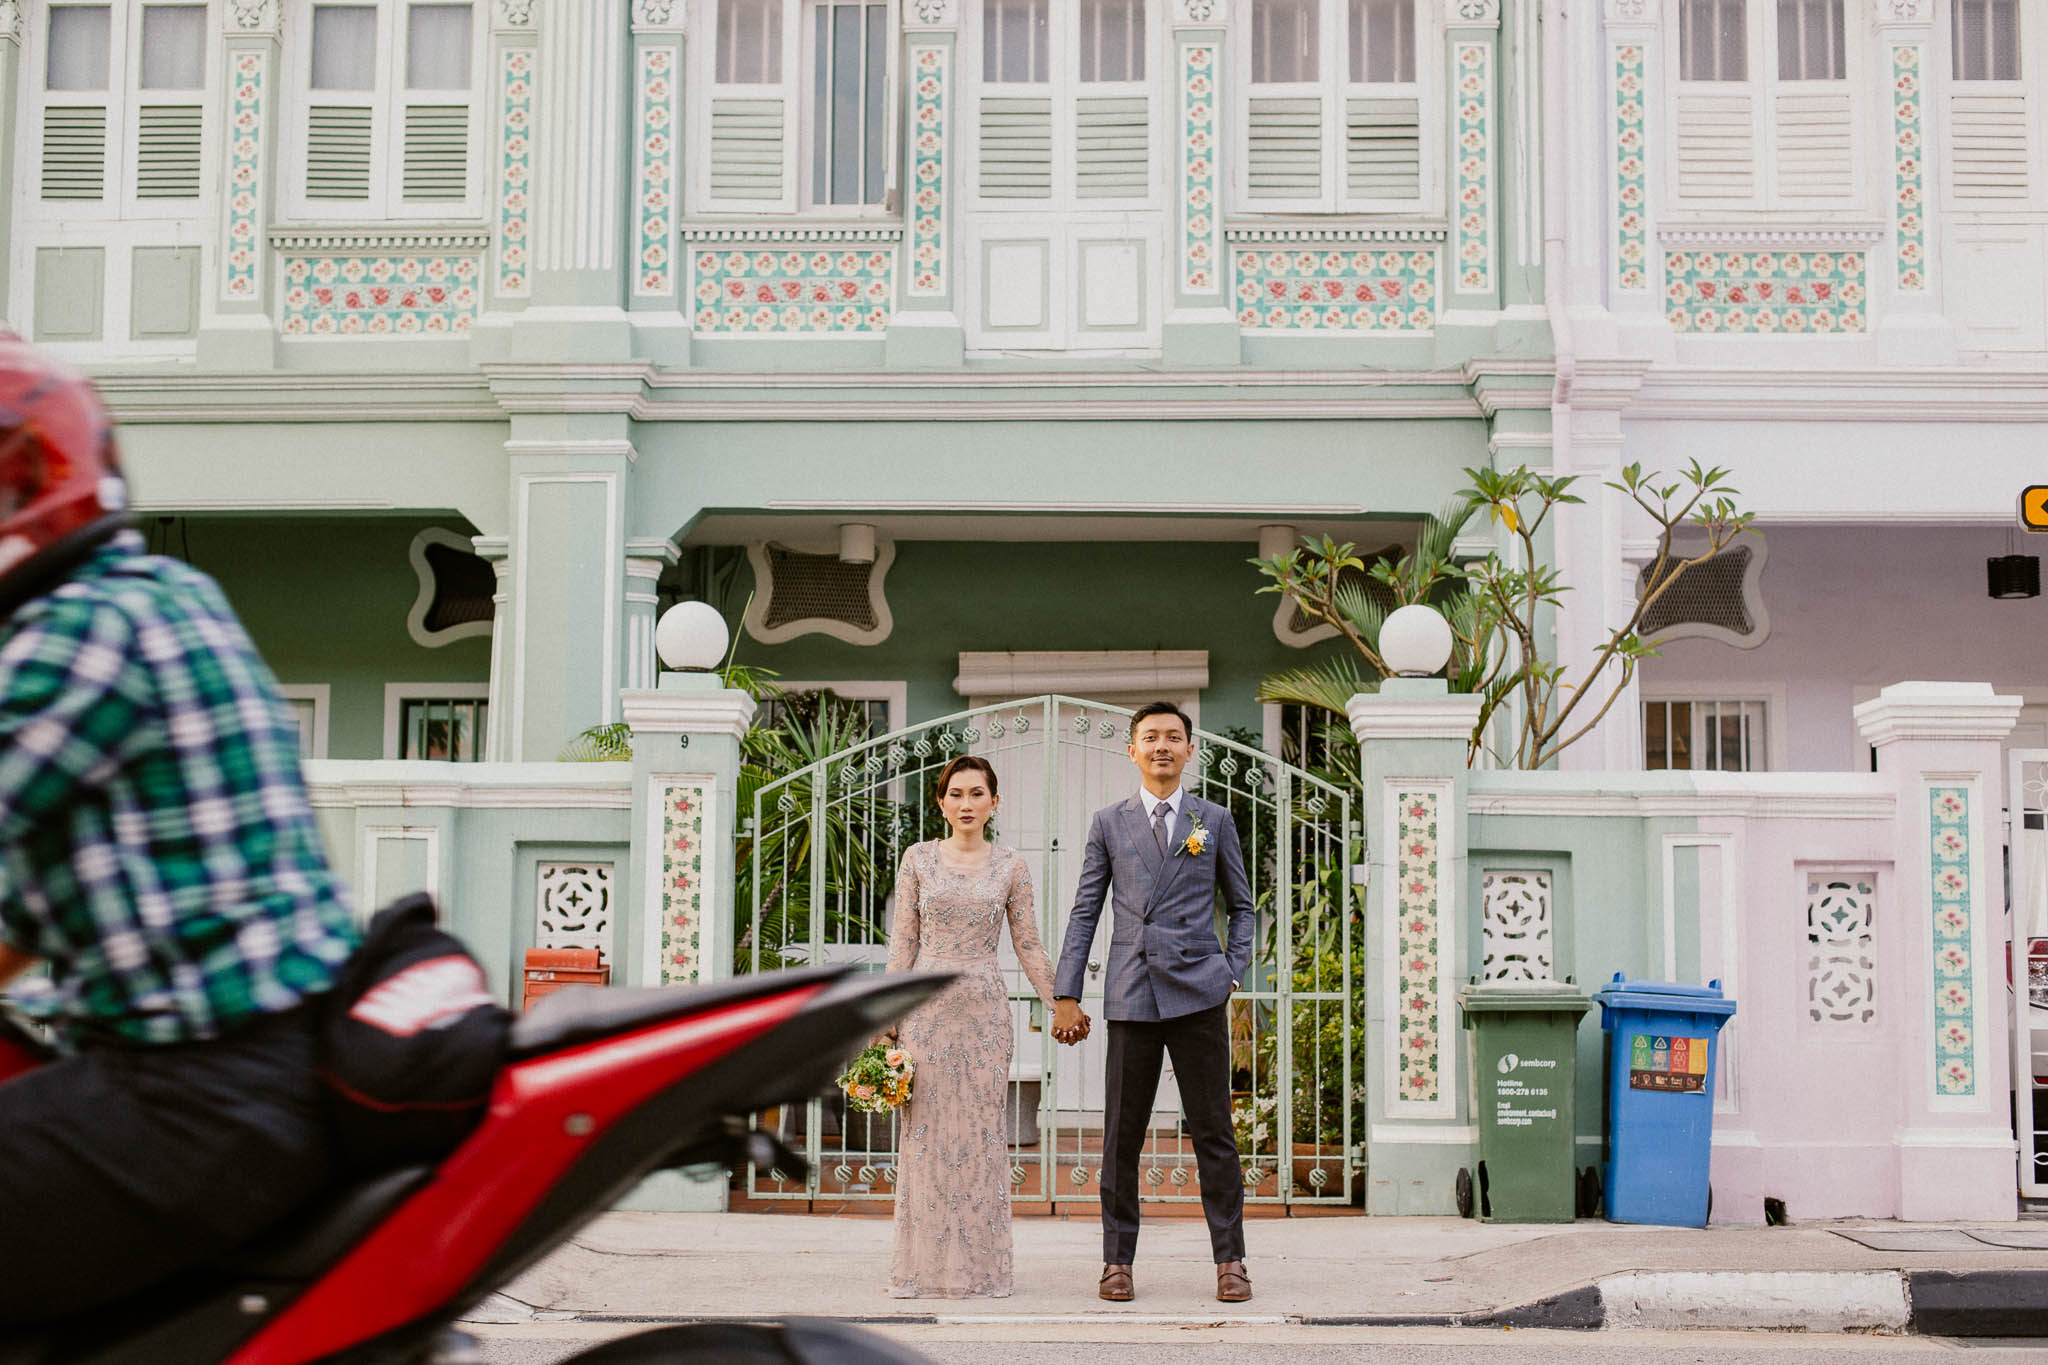 singapore-wedding-photographer-we-made-these-2016-selects-125.jpg